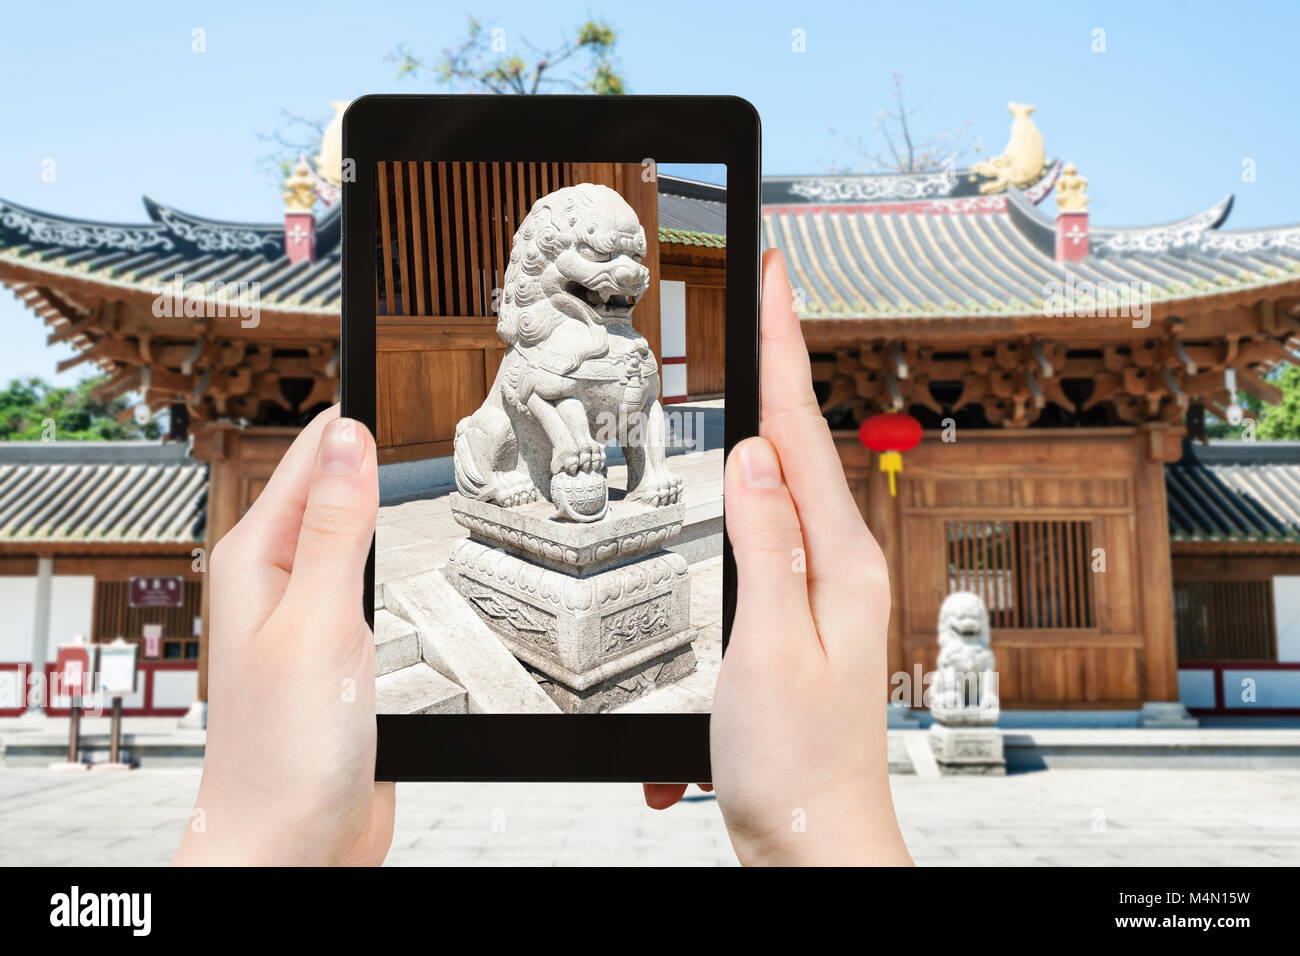 travel concept - tourist photographs lion statue near entrance to Guangxiao Buddhist Temple (Bright Obedience, Bright Stock Photo